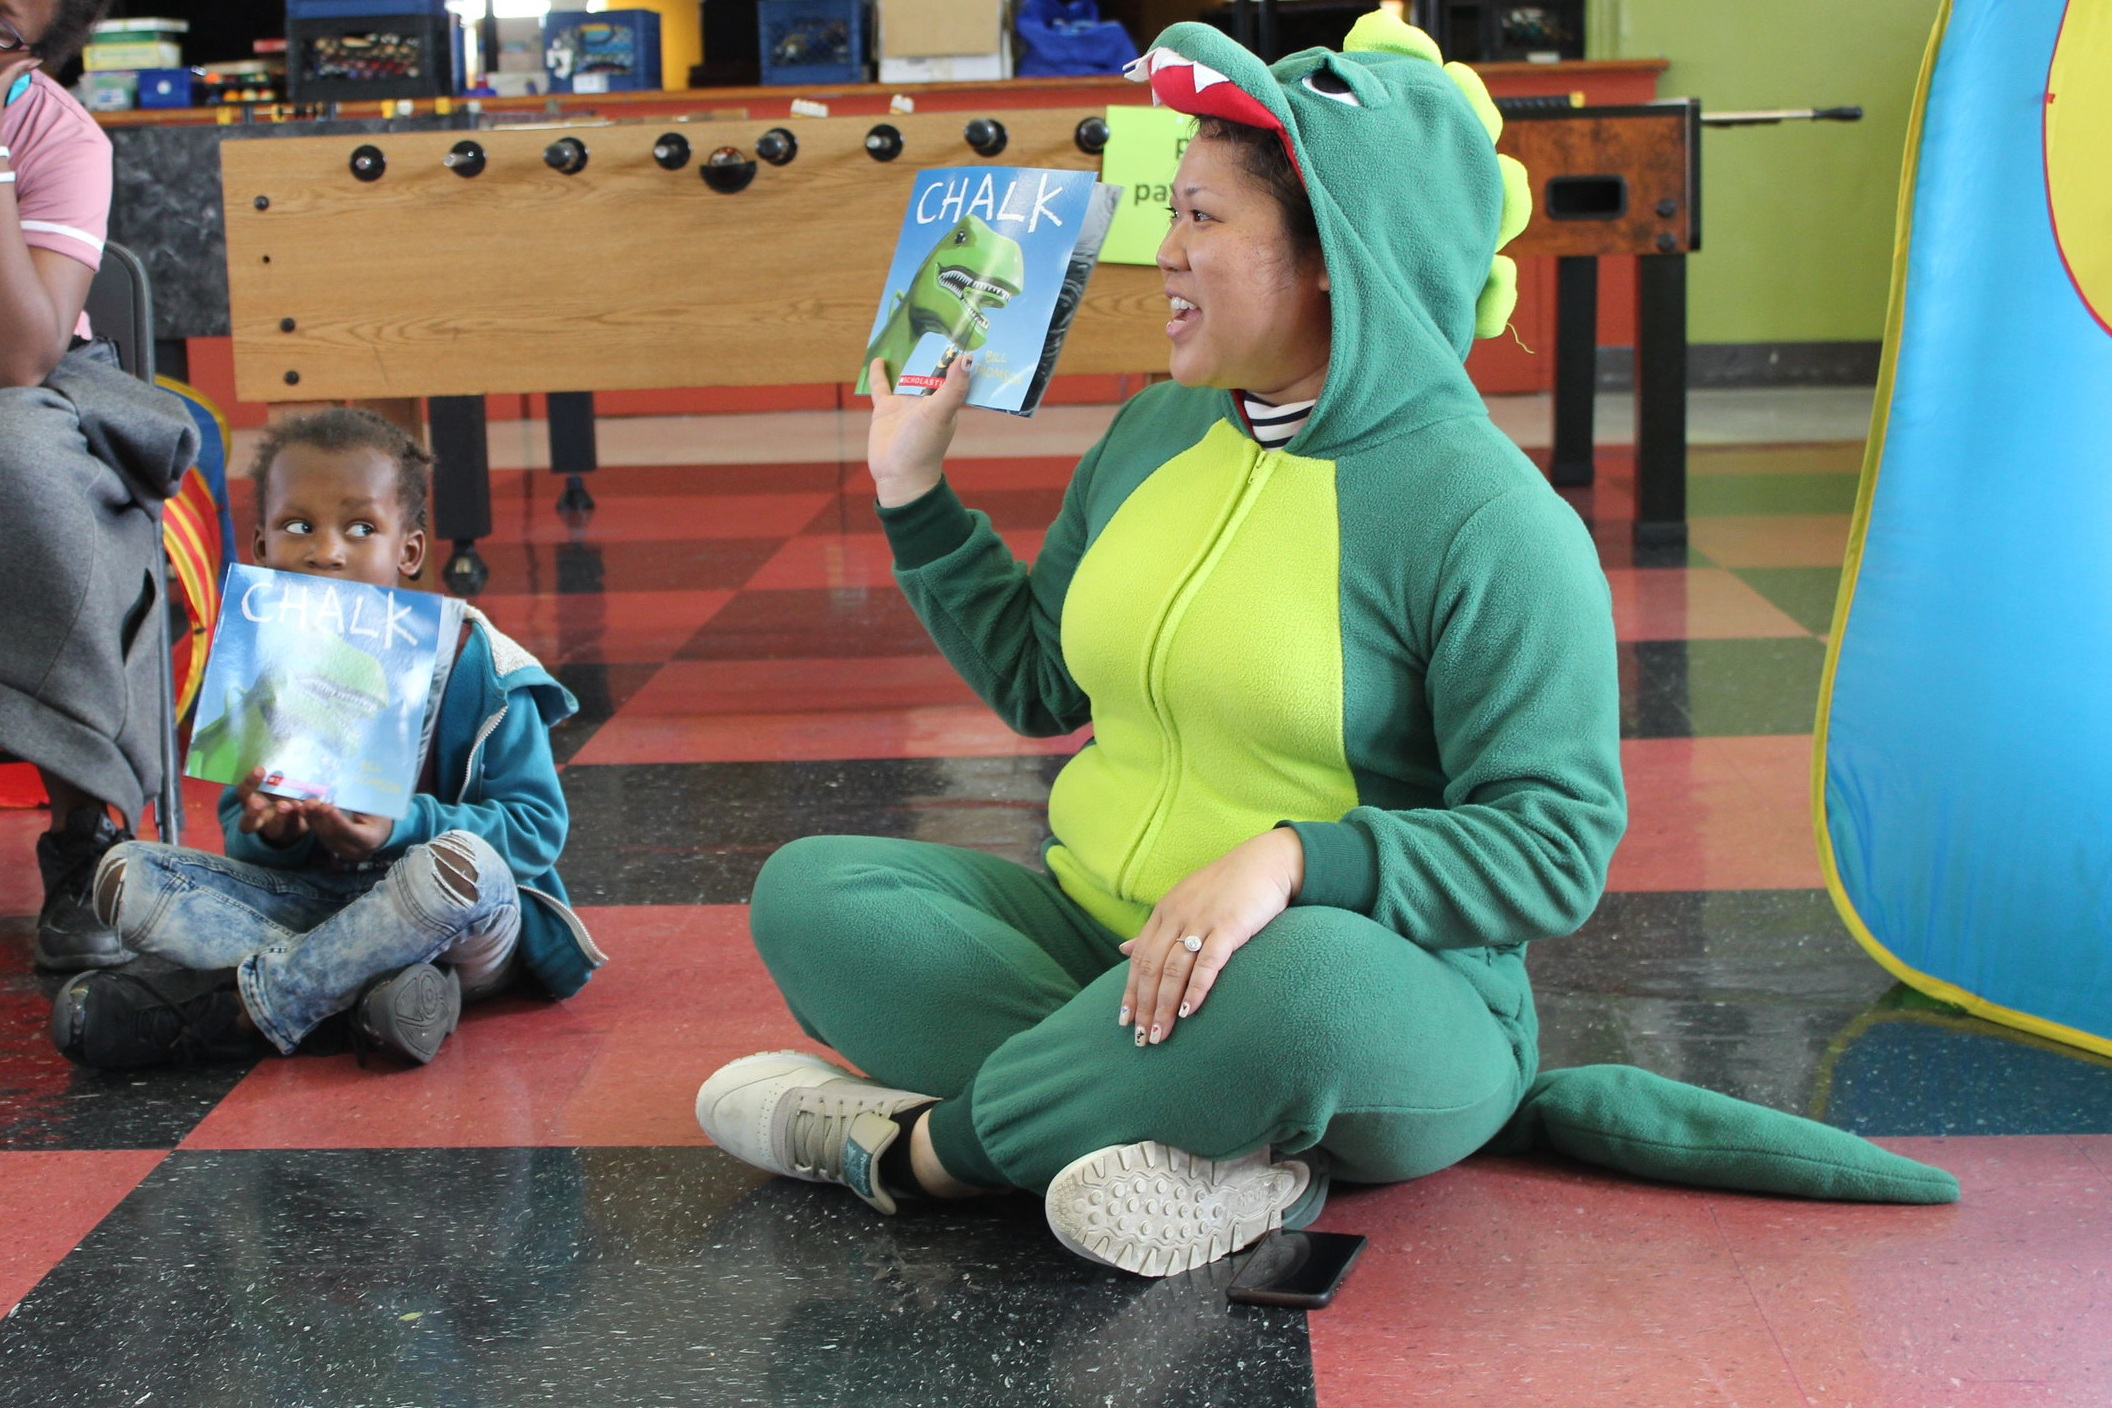 An image of Vichittra faciliting suring a Family Literacy Program session. She is wearing a dinosaur costume and holding up a book.